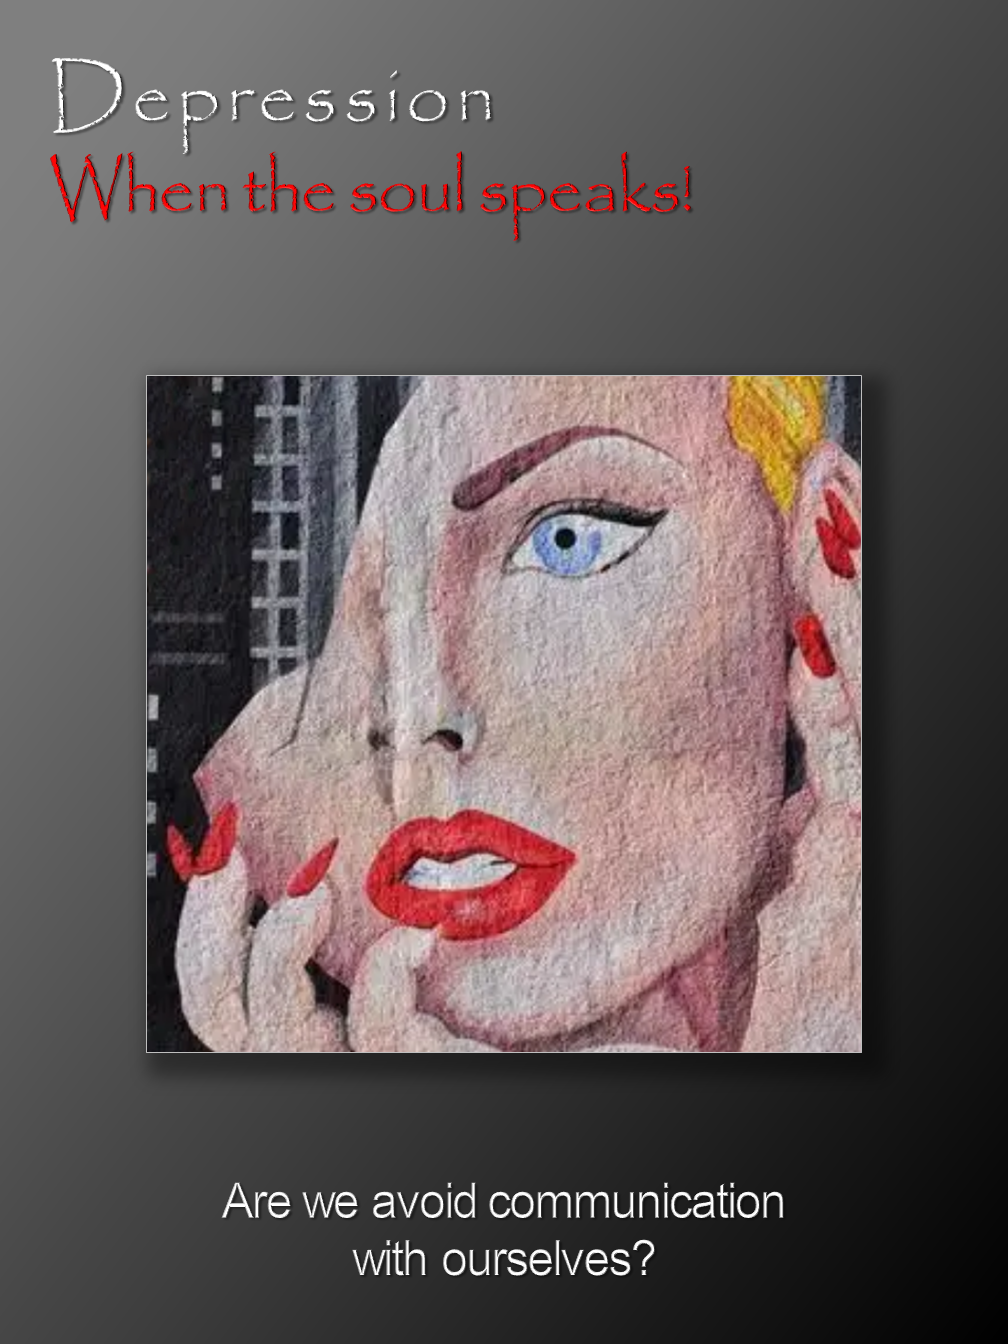 Depression: When the soul speaks!